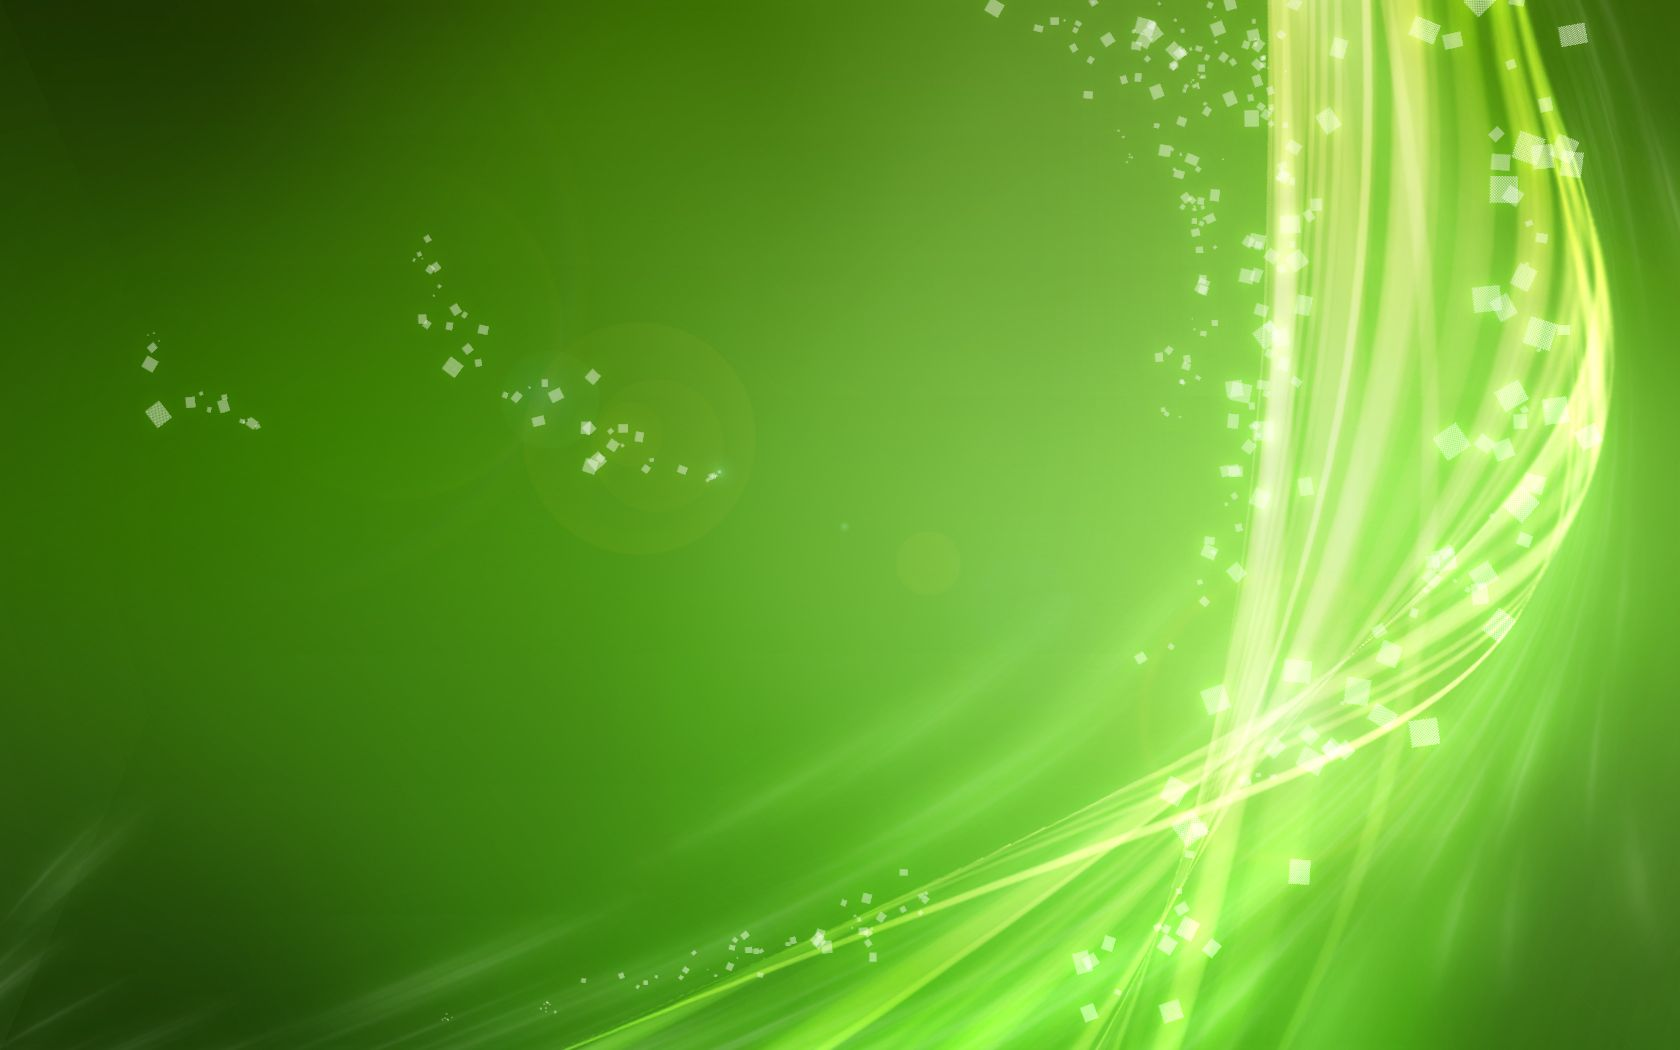 Green Backgrounds Wallpapers for PowerPoint